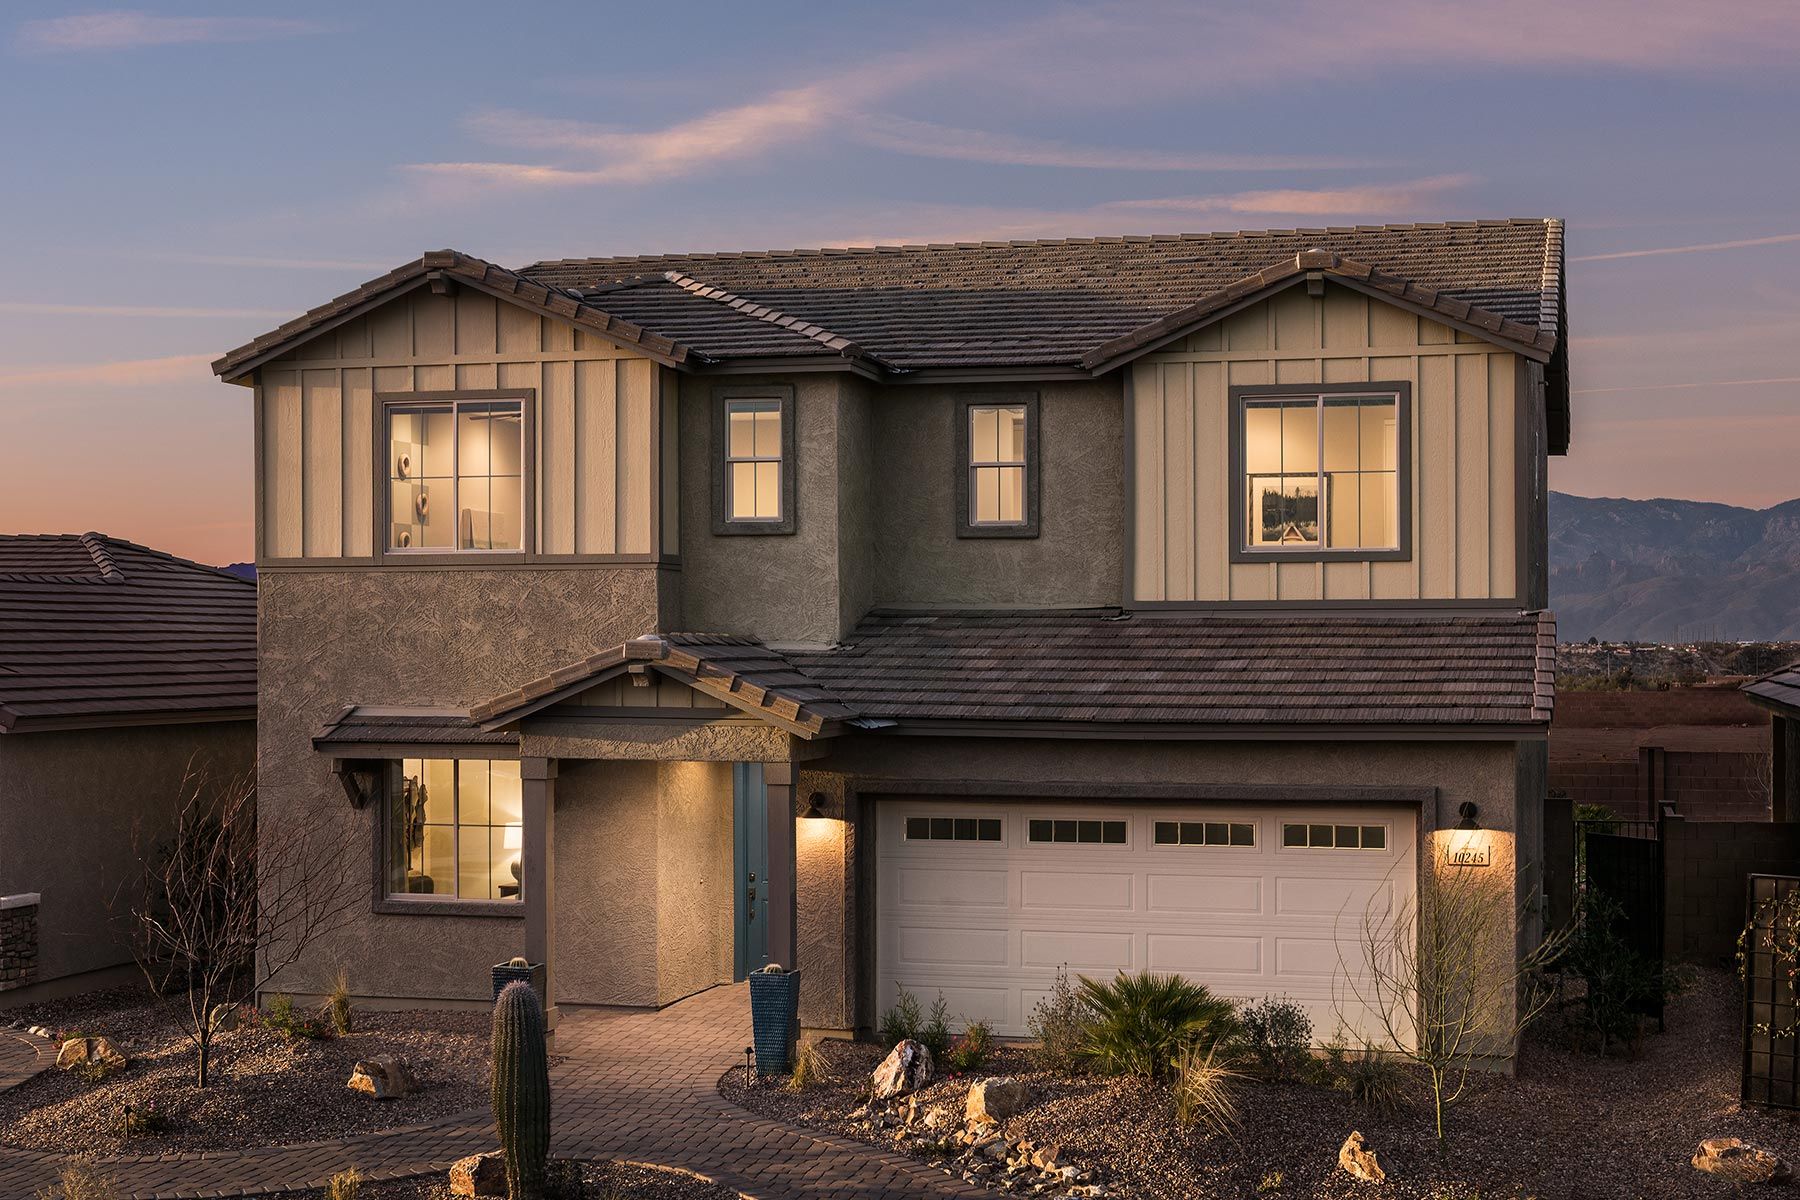 Mesquite Plan Elevation Front at Saguaro Trails in Tucson Arizona by Mattamy Homes